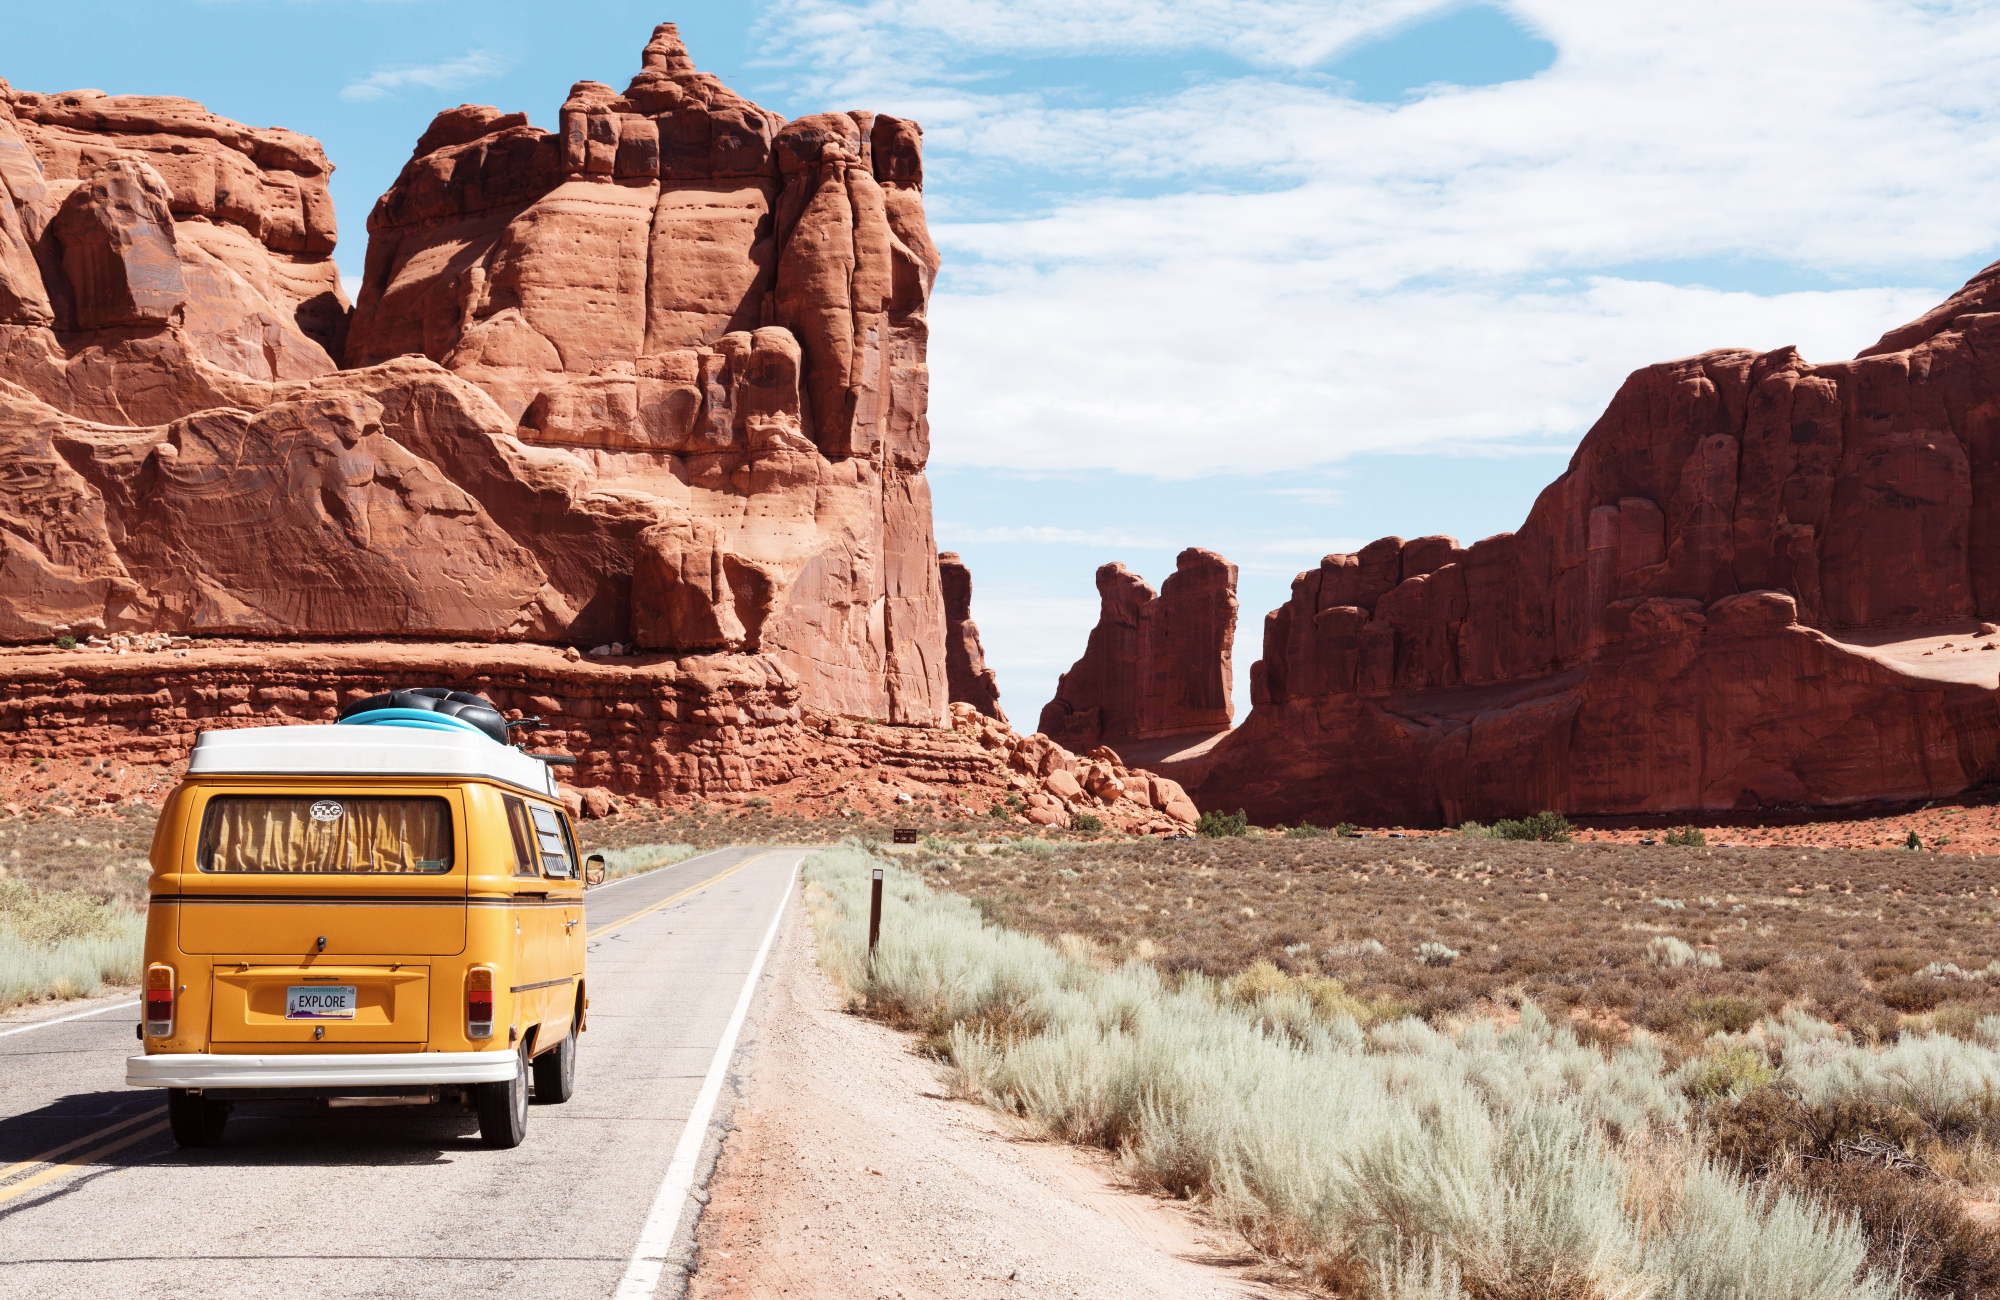 A campervan driving along the road in the USA